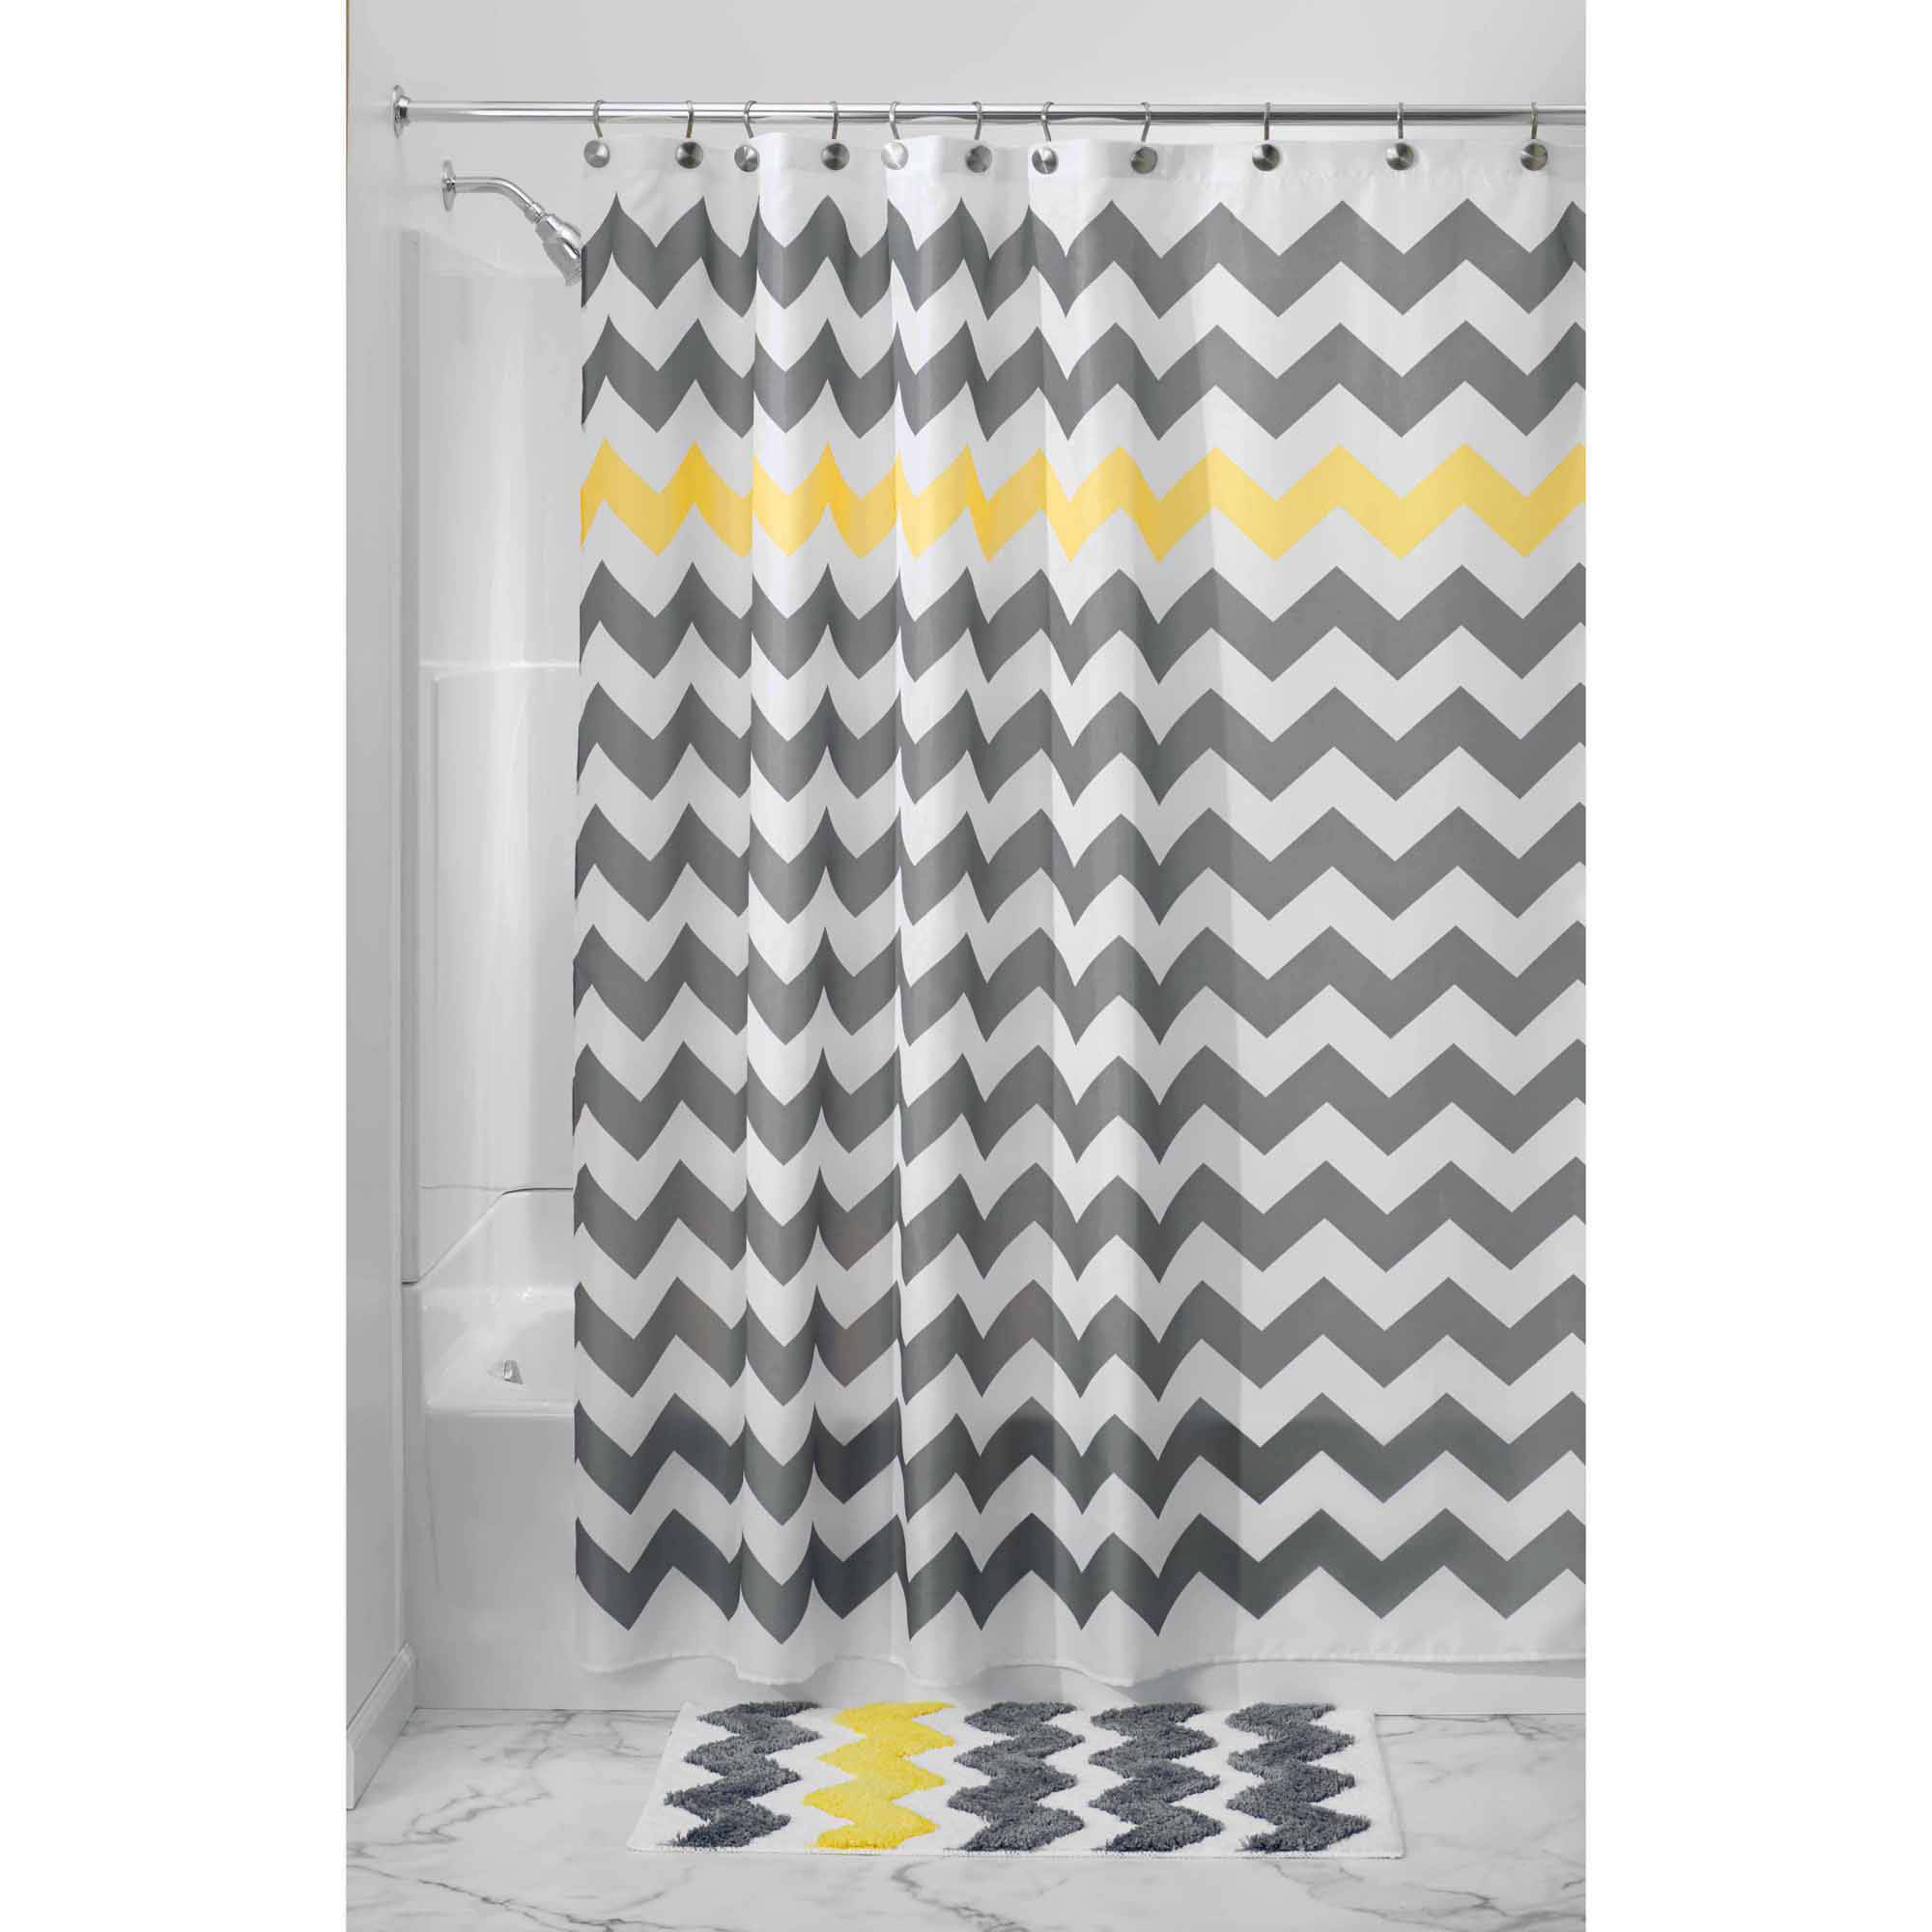 Chevron Shower Curtains with regard to dimensions 2000 X 2000